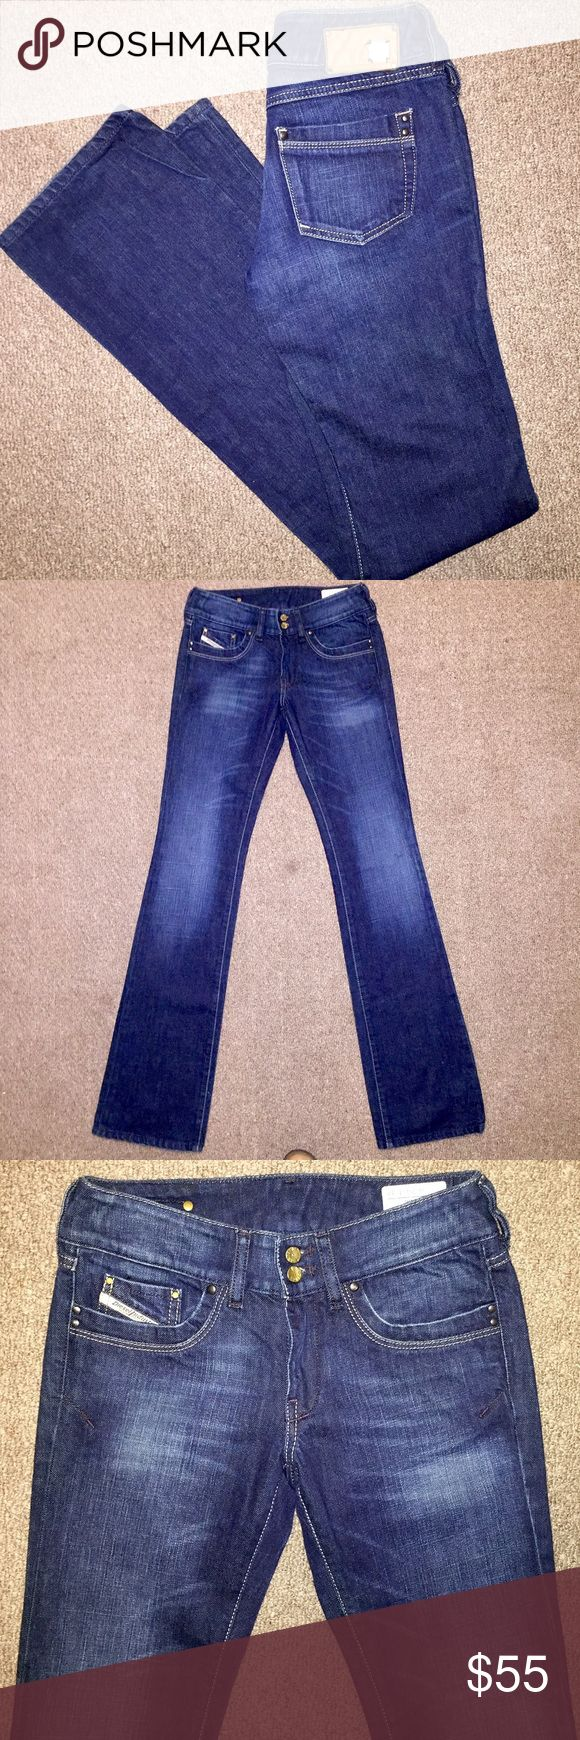 😍 Diesel Stretch Boot Cut Jeans 😍 Gorgeous Diesel Ronhar Dark Wash Boot Cut Women's Designer Jeans in size 26 , with an inseam of 34. These are stunning and in excellent condition! 😍😍 Diesel Jeans Boot Cut